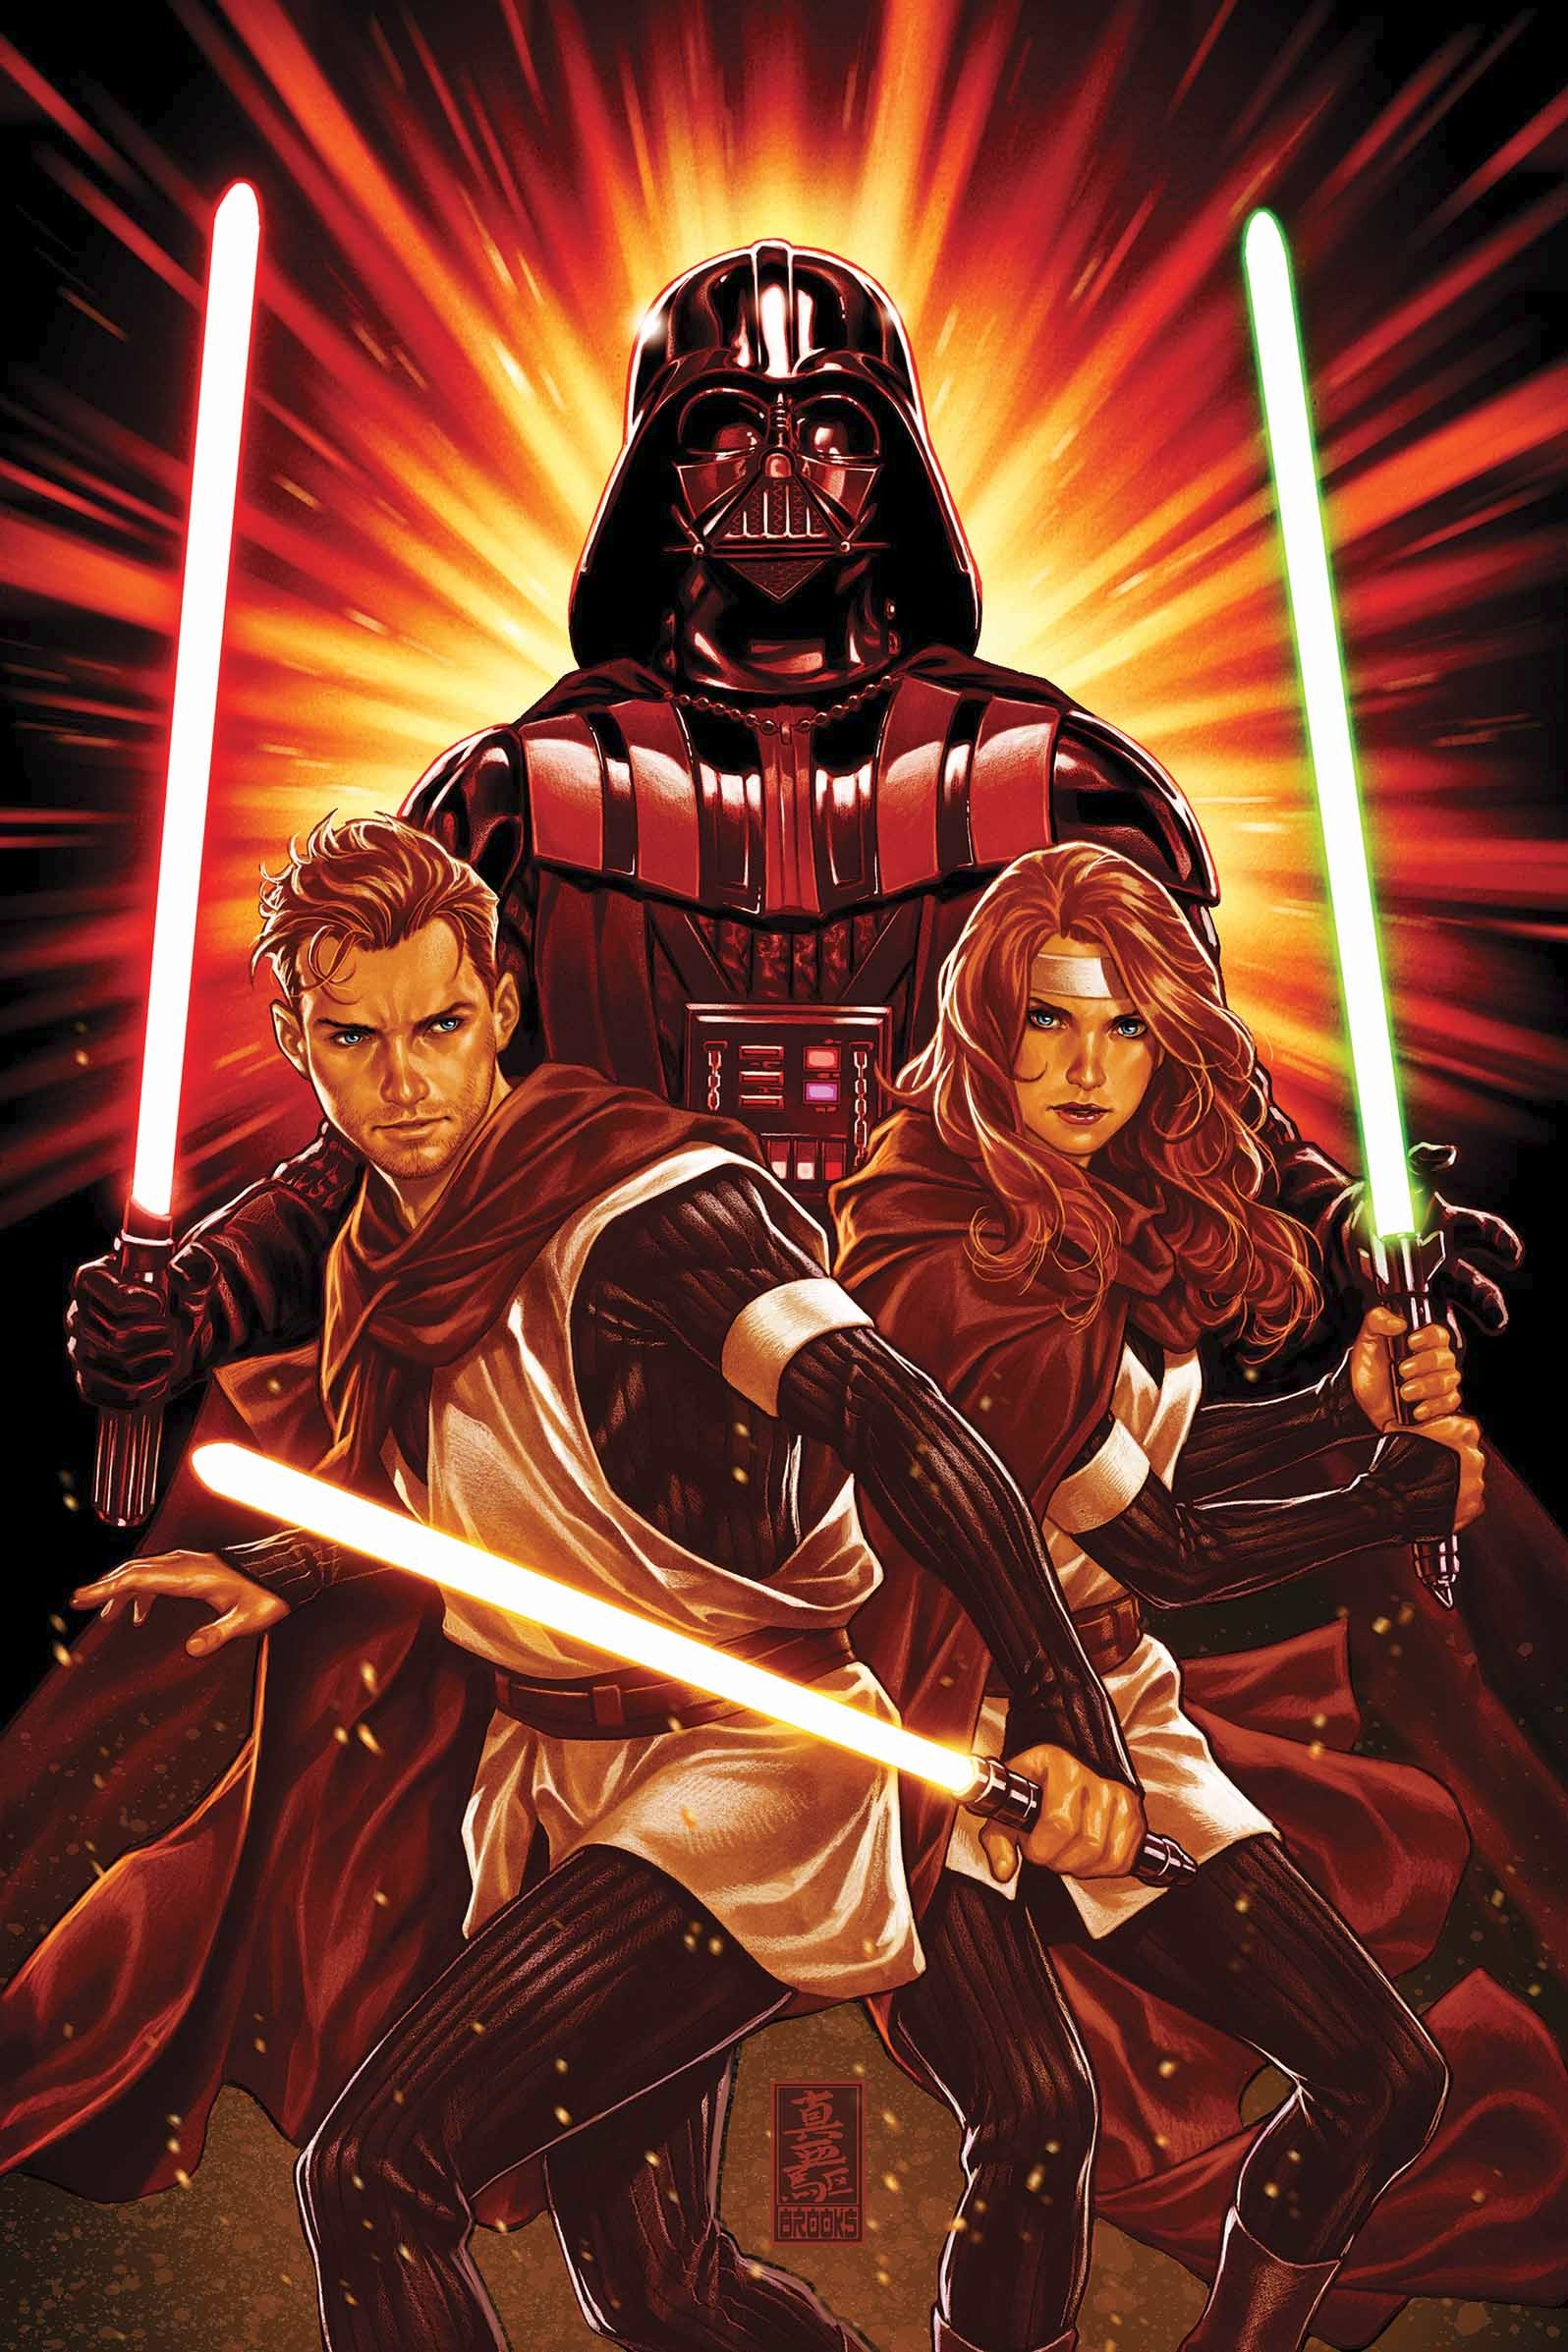 Star Wars Comics 10 - Couverture B